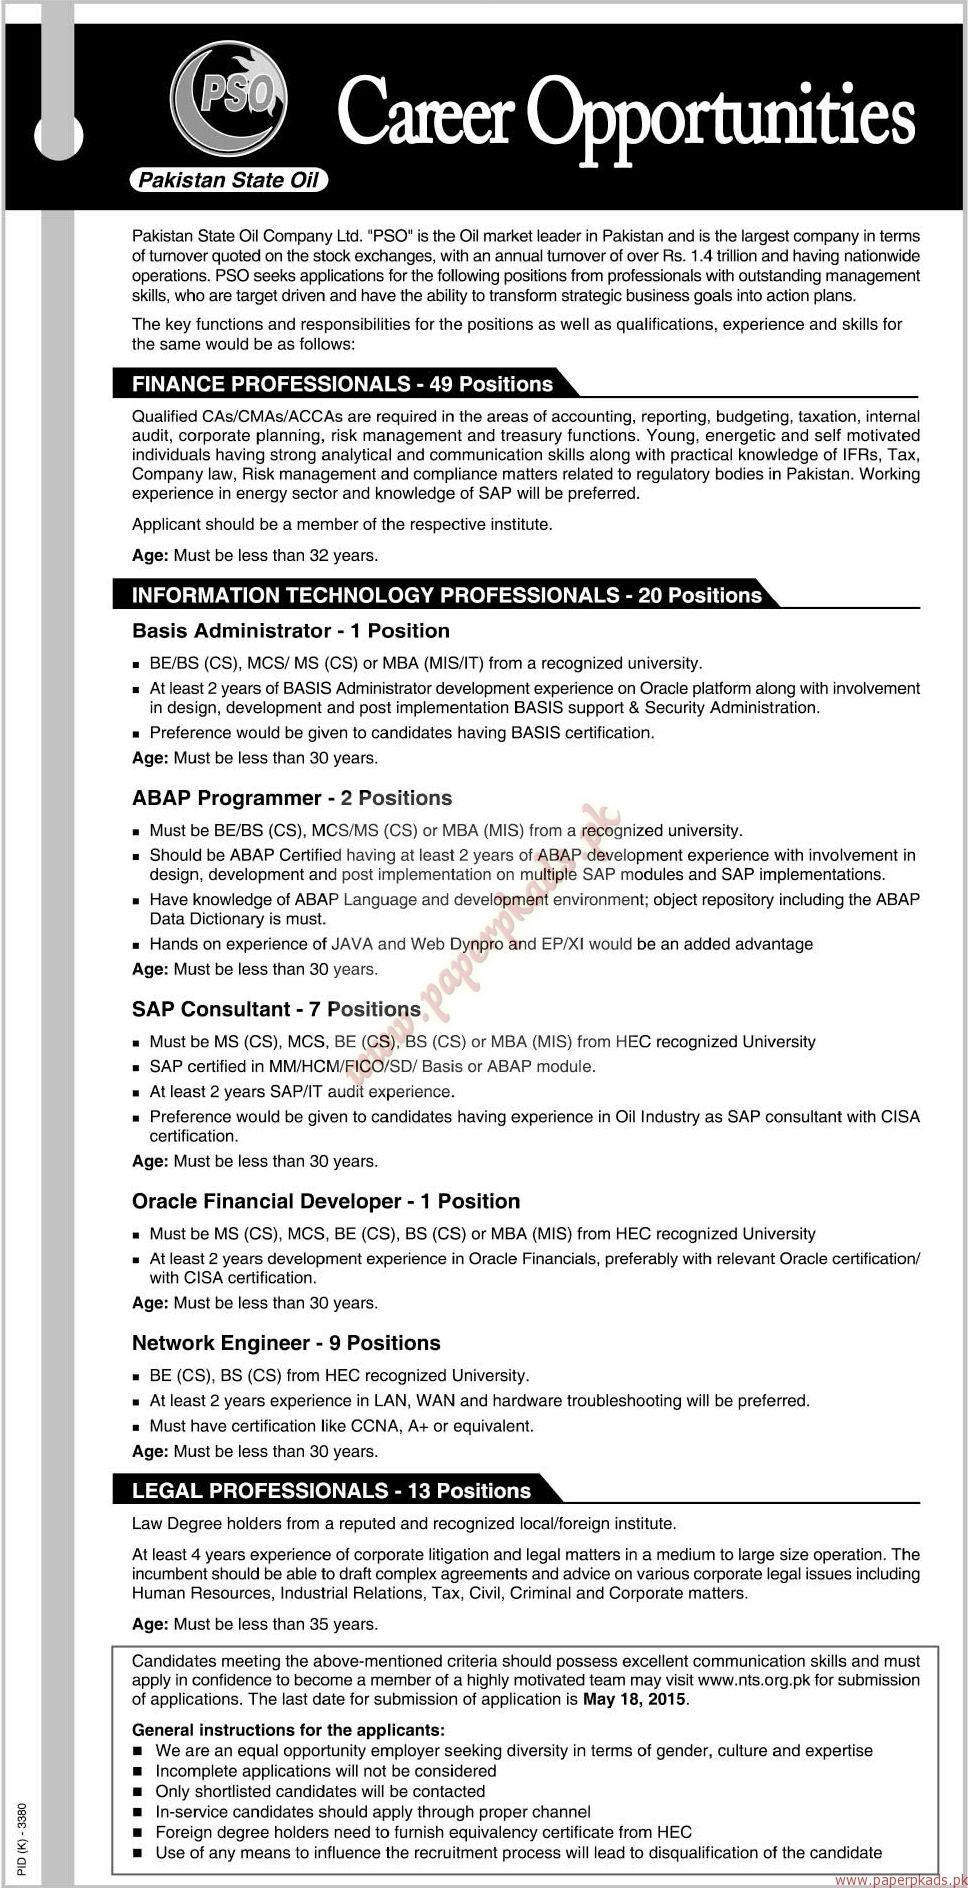 PSO Jobs U2013 The News Jobs Ads 03 May 2015